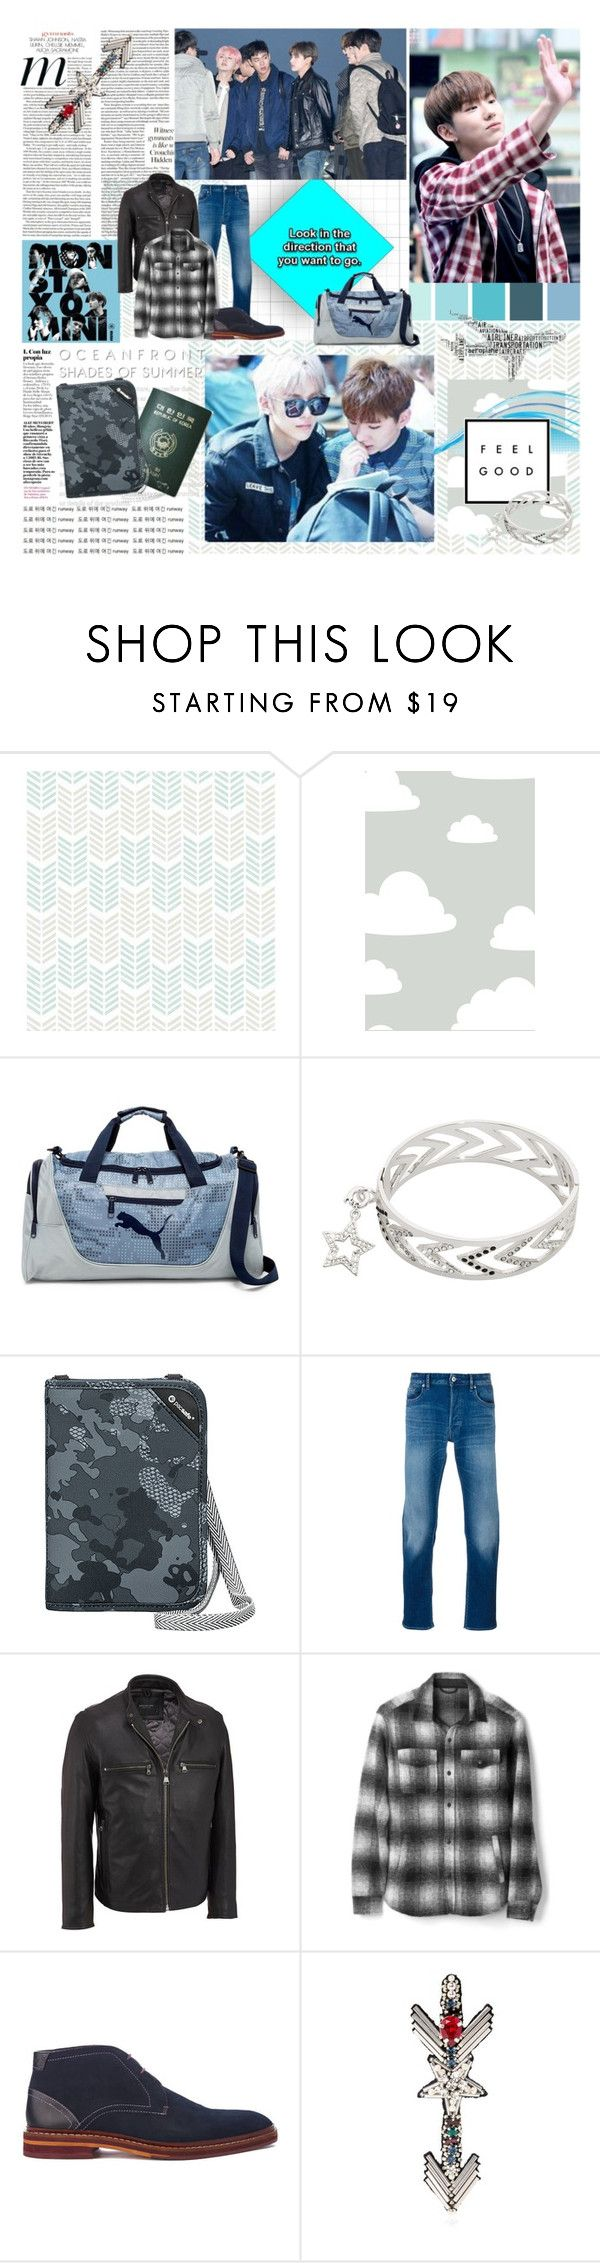 """""""BOTKPG2 Round 7: Final Destination"""" by tokyotrekker ❤ liked on Polyvore featuring Wall Pops!, Puma, nikki lissoni, Passport, Pacsafe, STONE ISLAND, Andrew Marc, Gap, Ted Baker and Happy Embellishments"""